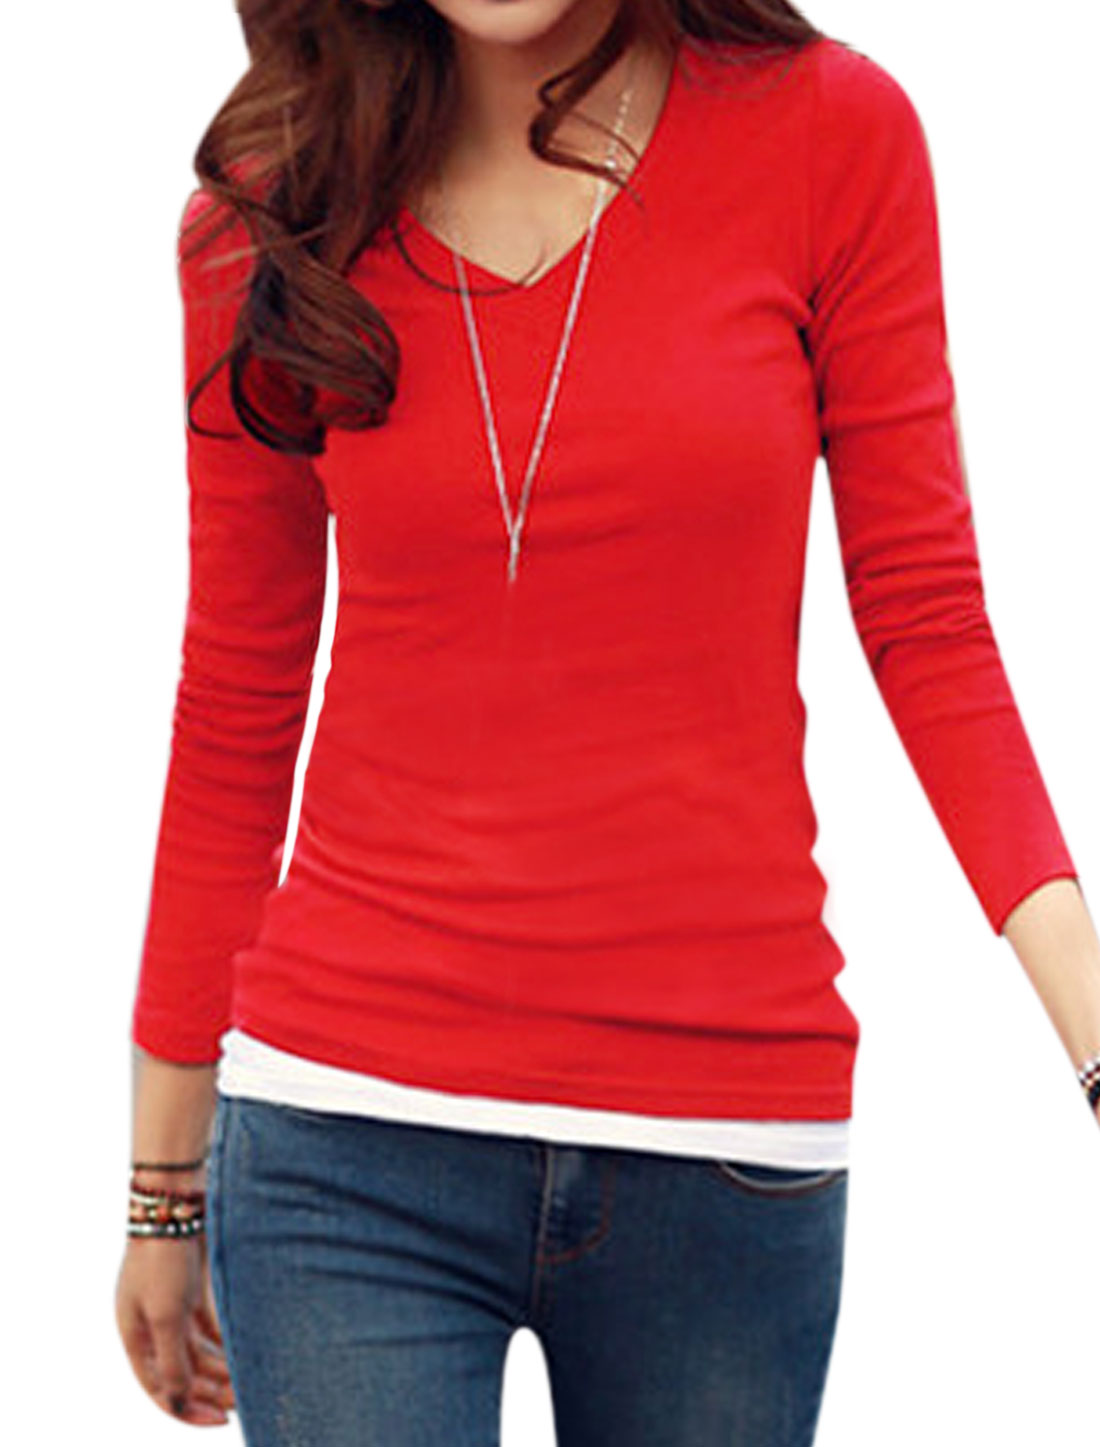 Ladies V Neck Long Sleeves Slim Fit Leisure T-Shirt Red S